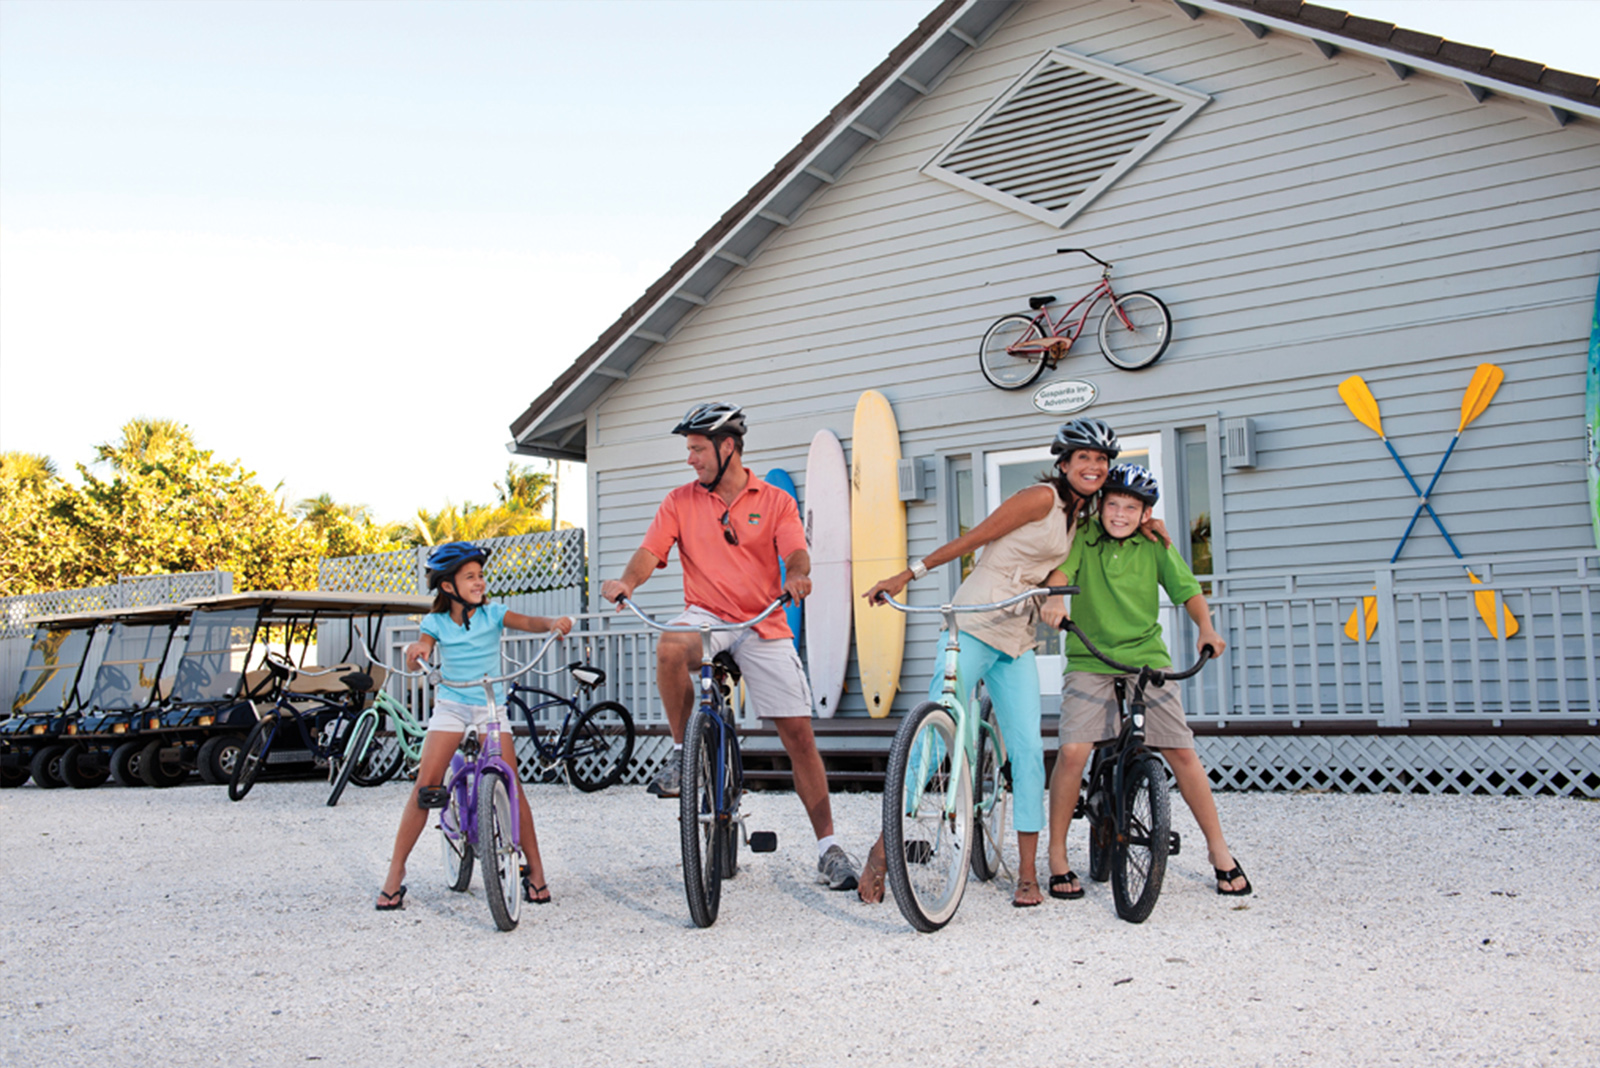 A family posing on bicycles